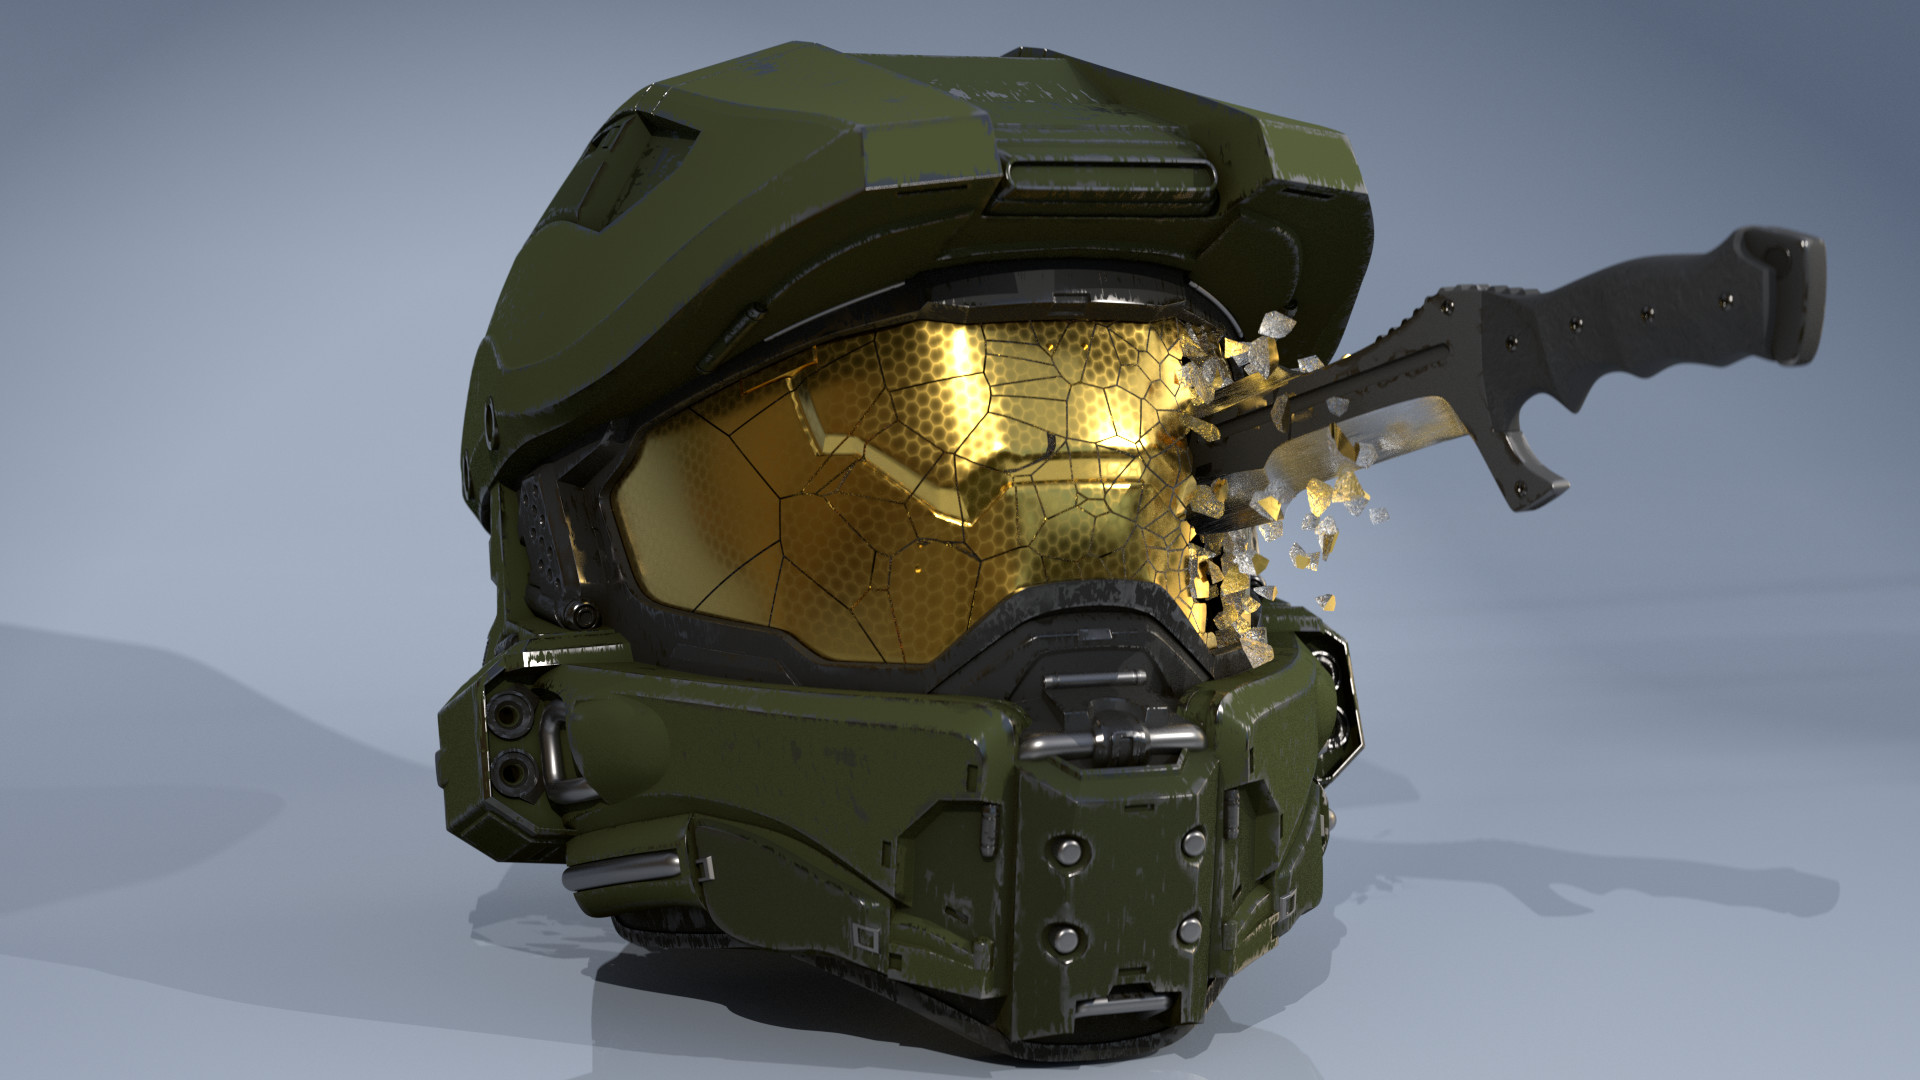 Kristian Berget Master Chief Helmet And Halo Combat Knife